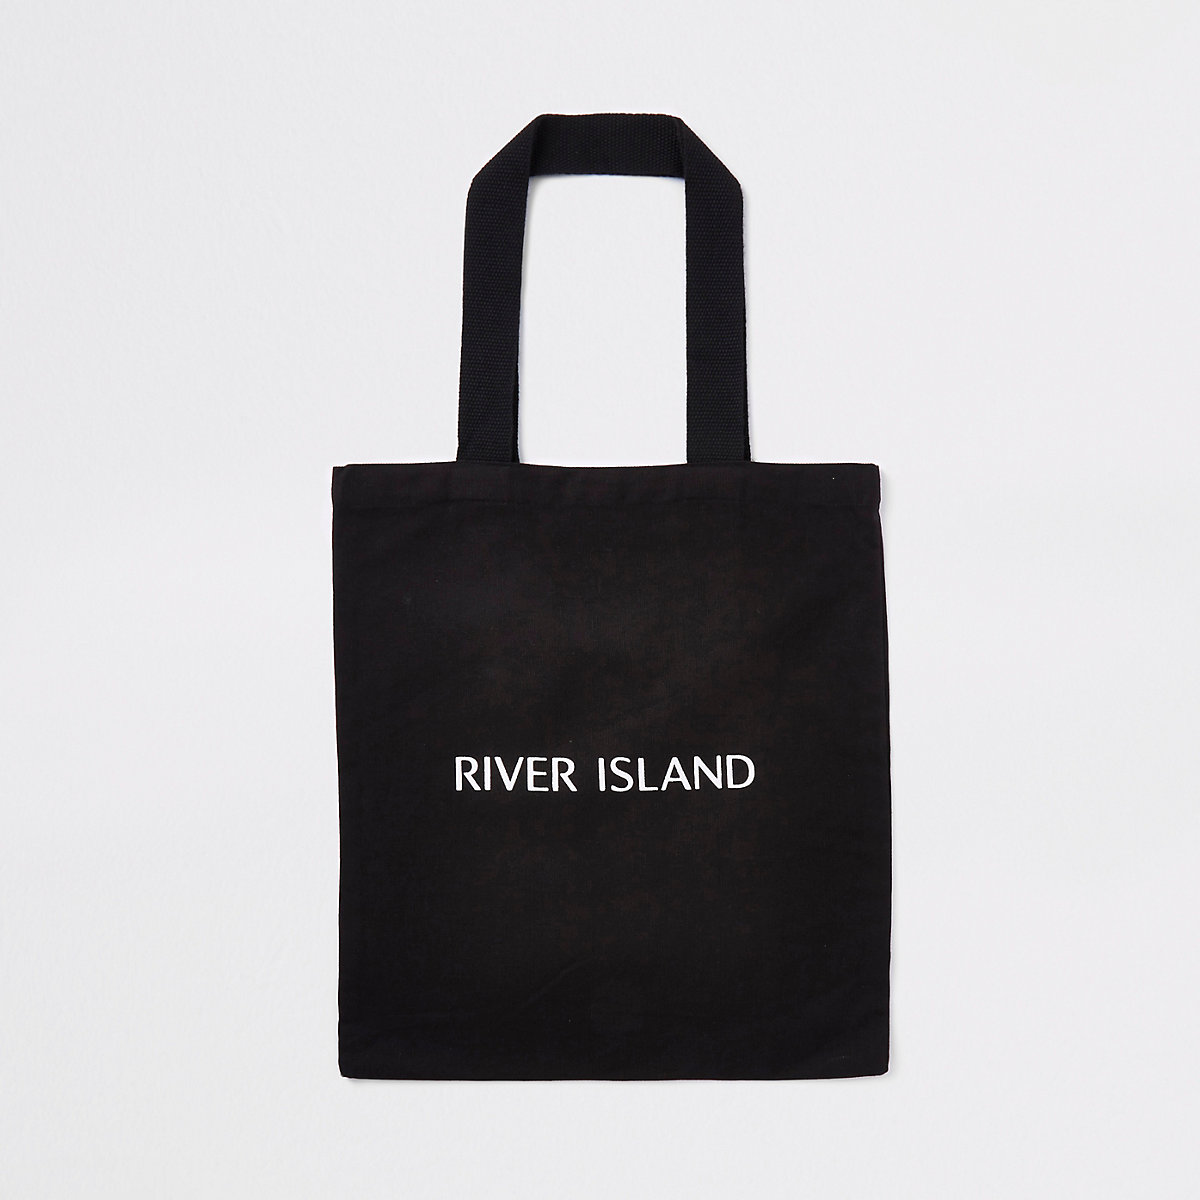 Black RI shopper tote bag